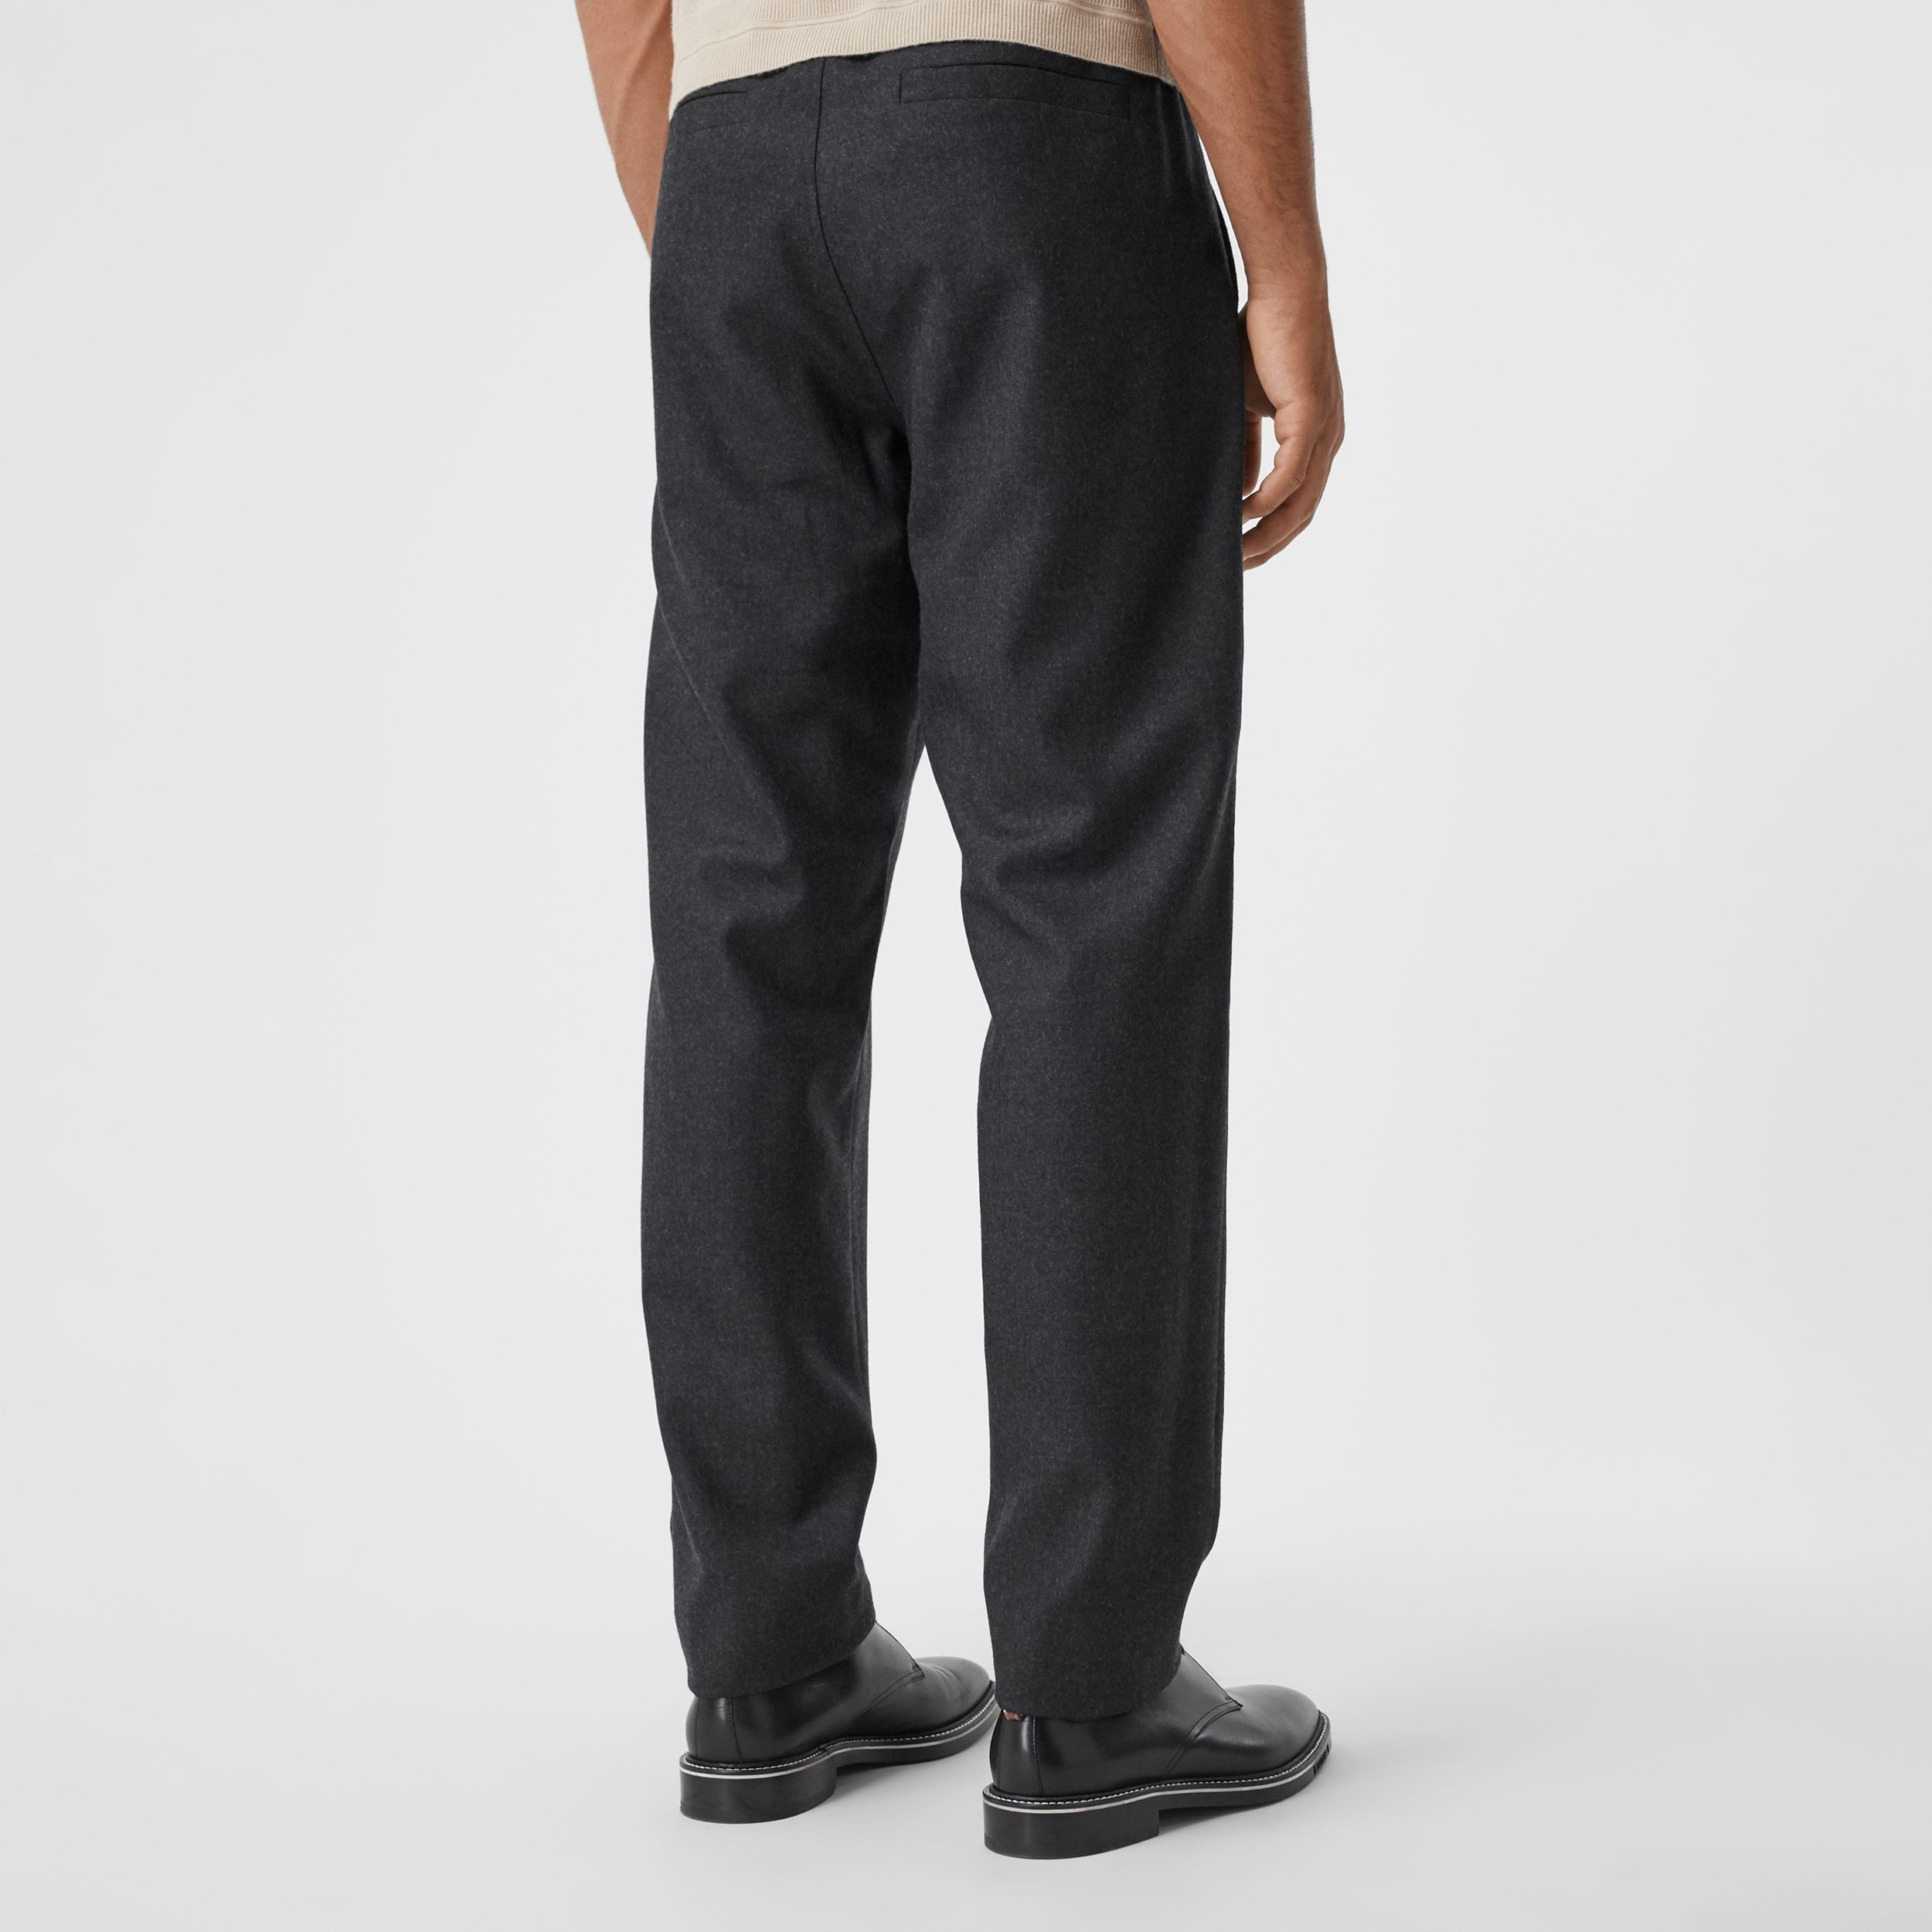 Monogram Motif Wool Jogging Pants in Charcoal Melange - Men | Burberry Hong Kong S.A.R. - 3